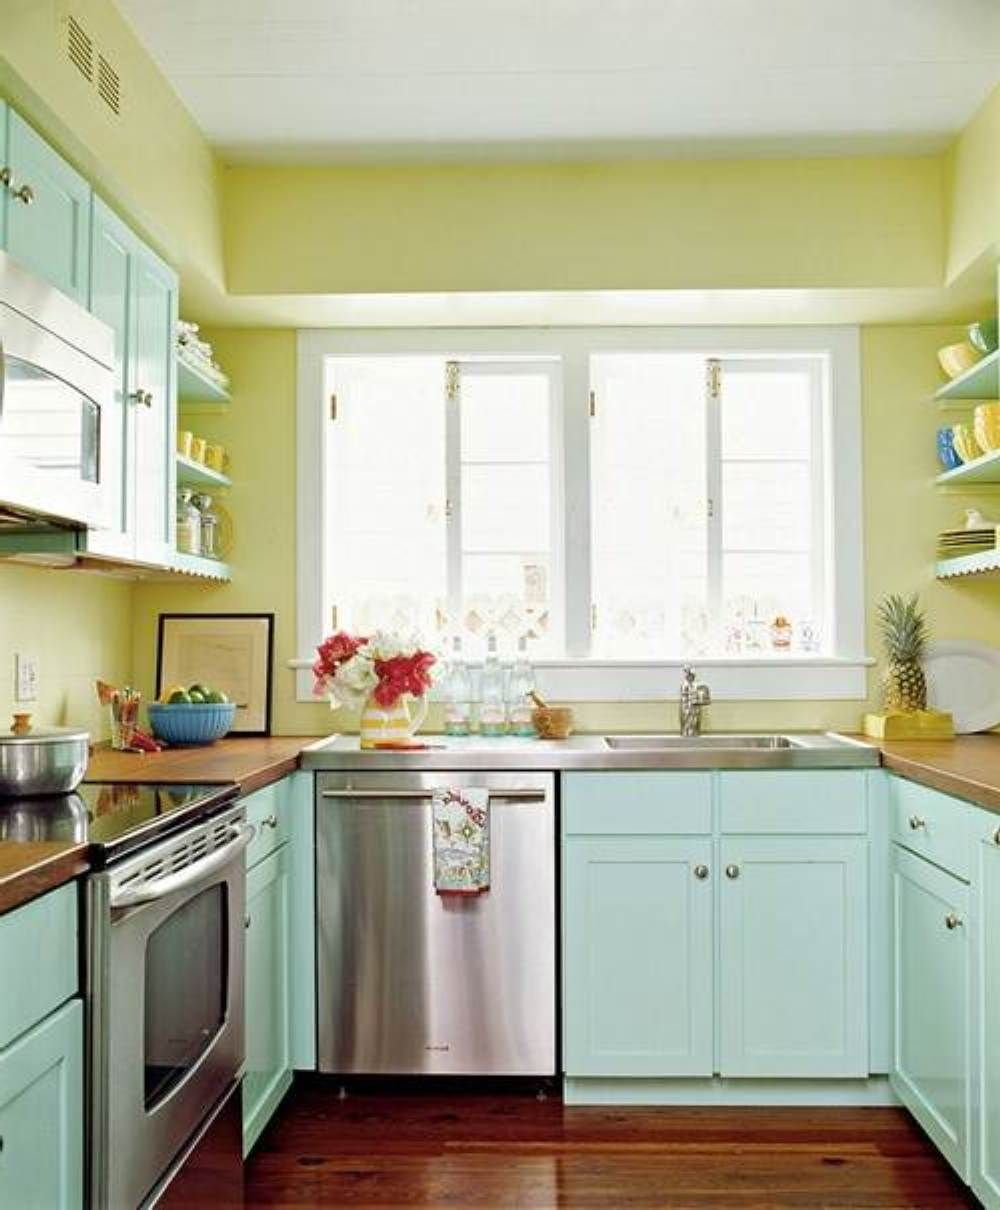 Small Kitchen Design Ideas | Wall colors, Kitchens and Walls